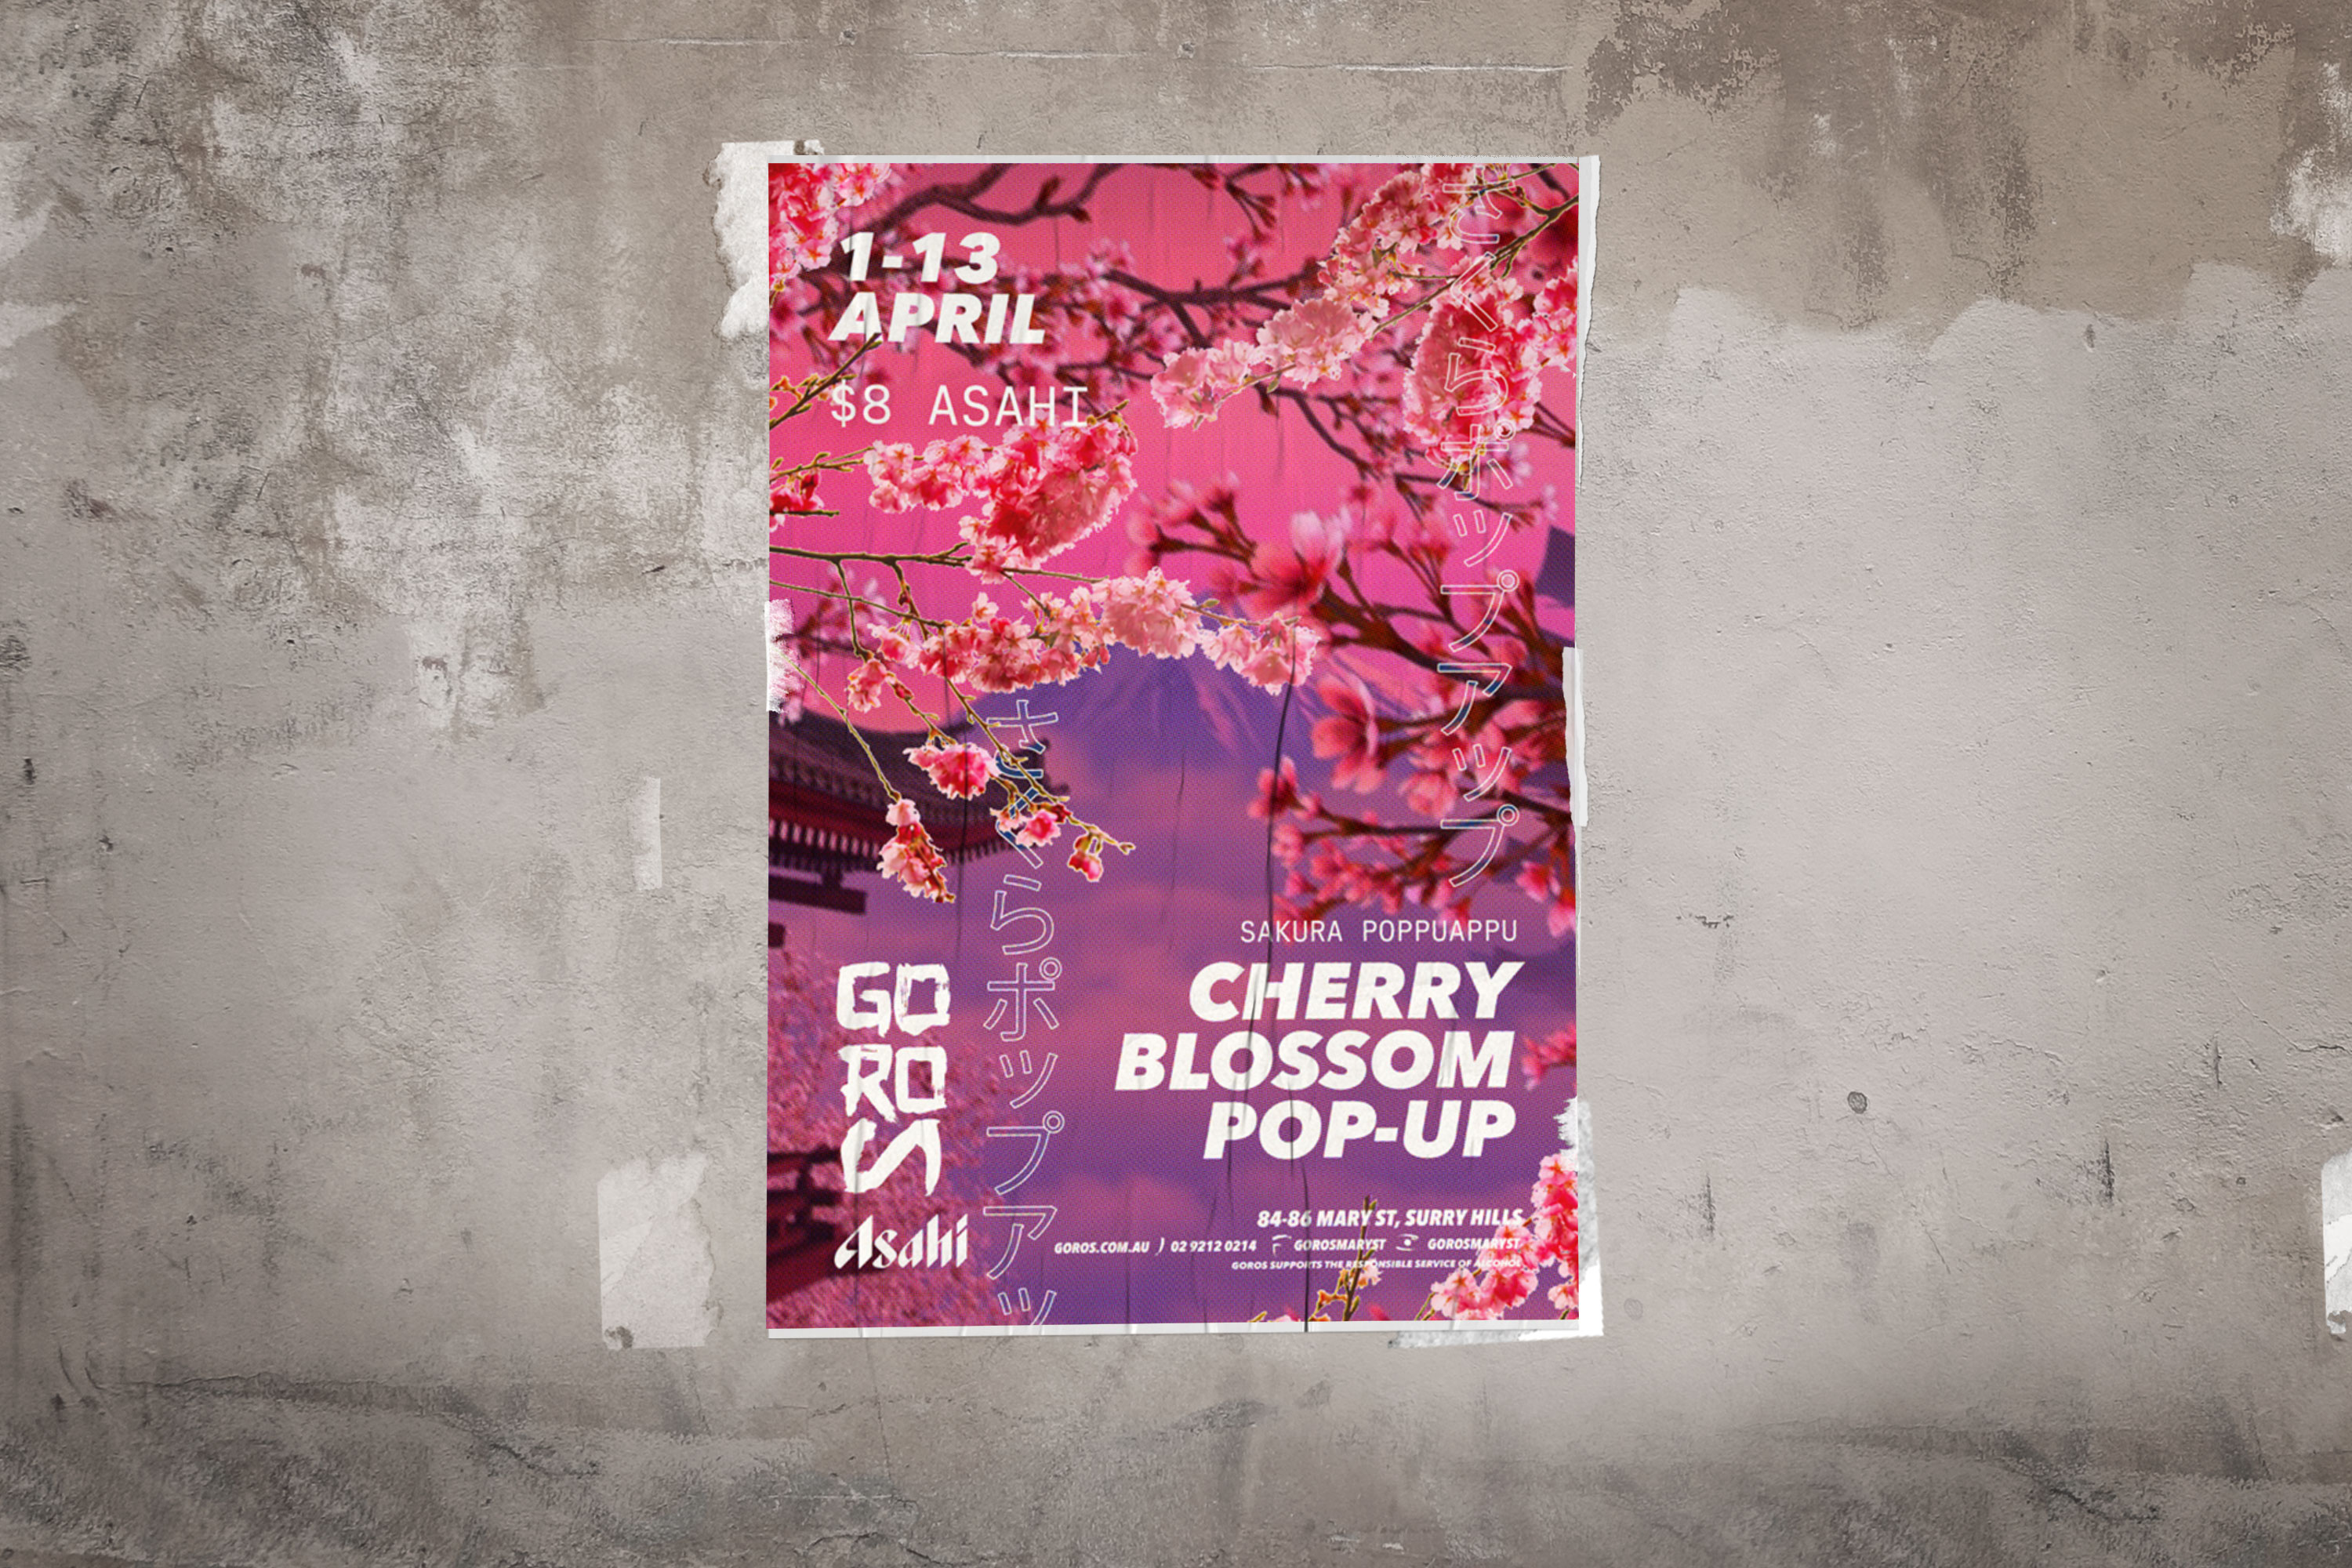 poster print design for sakura cherry blossom pop-up event at goros